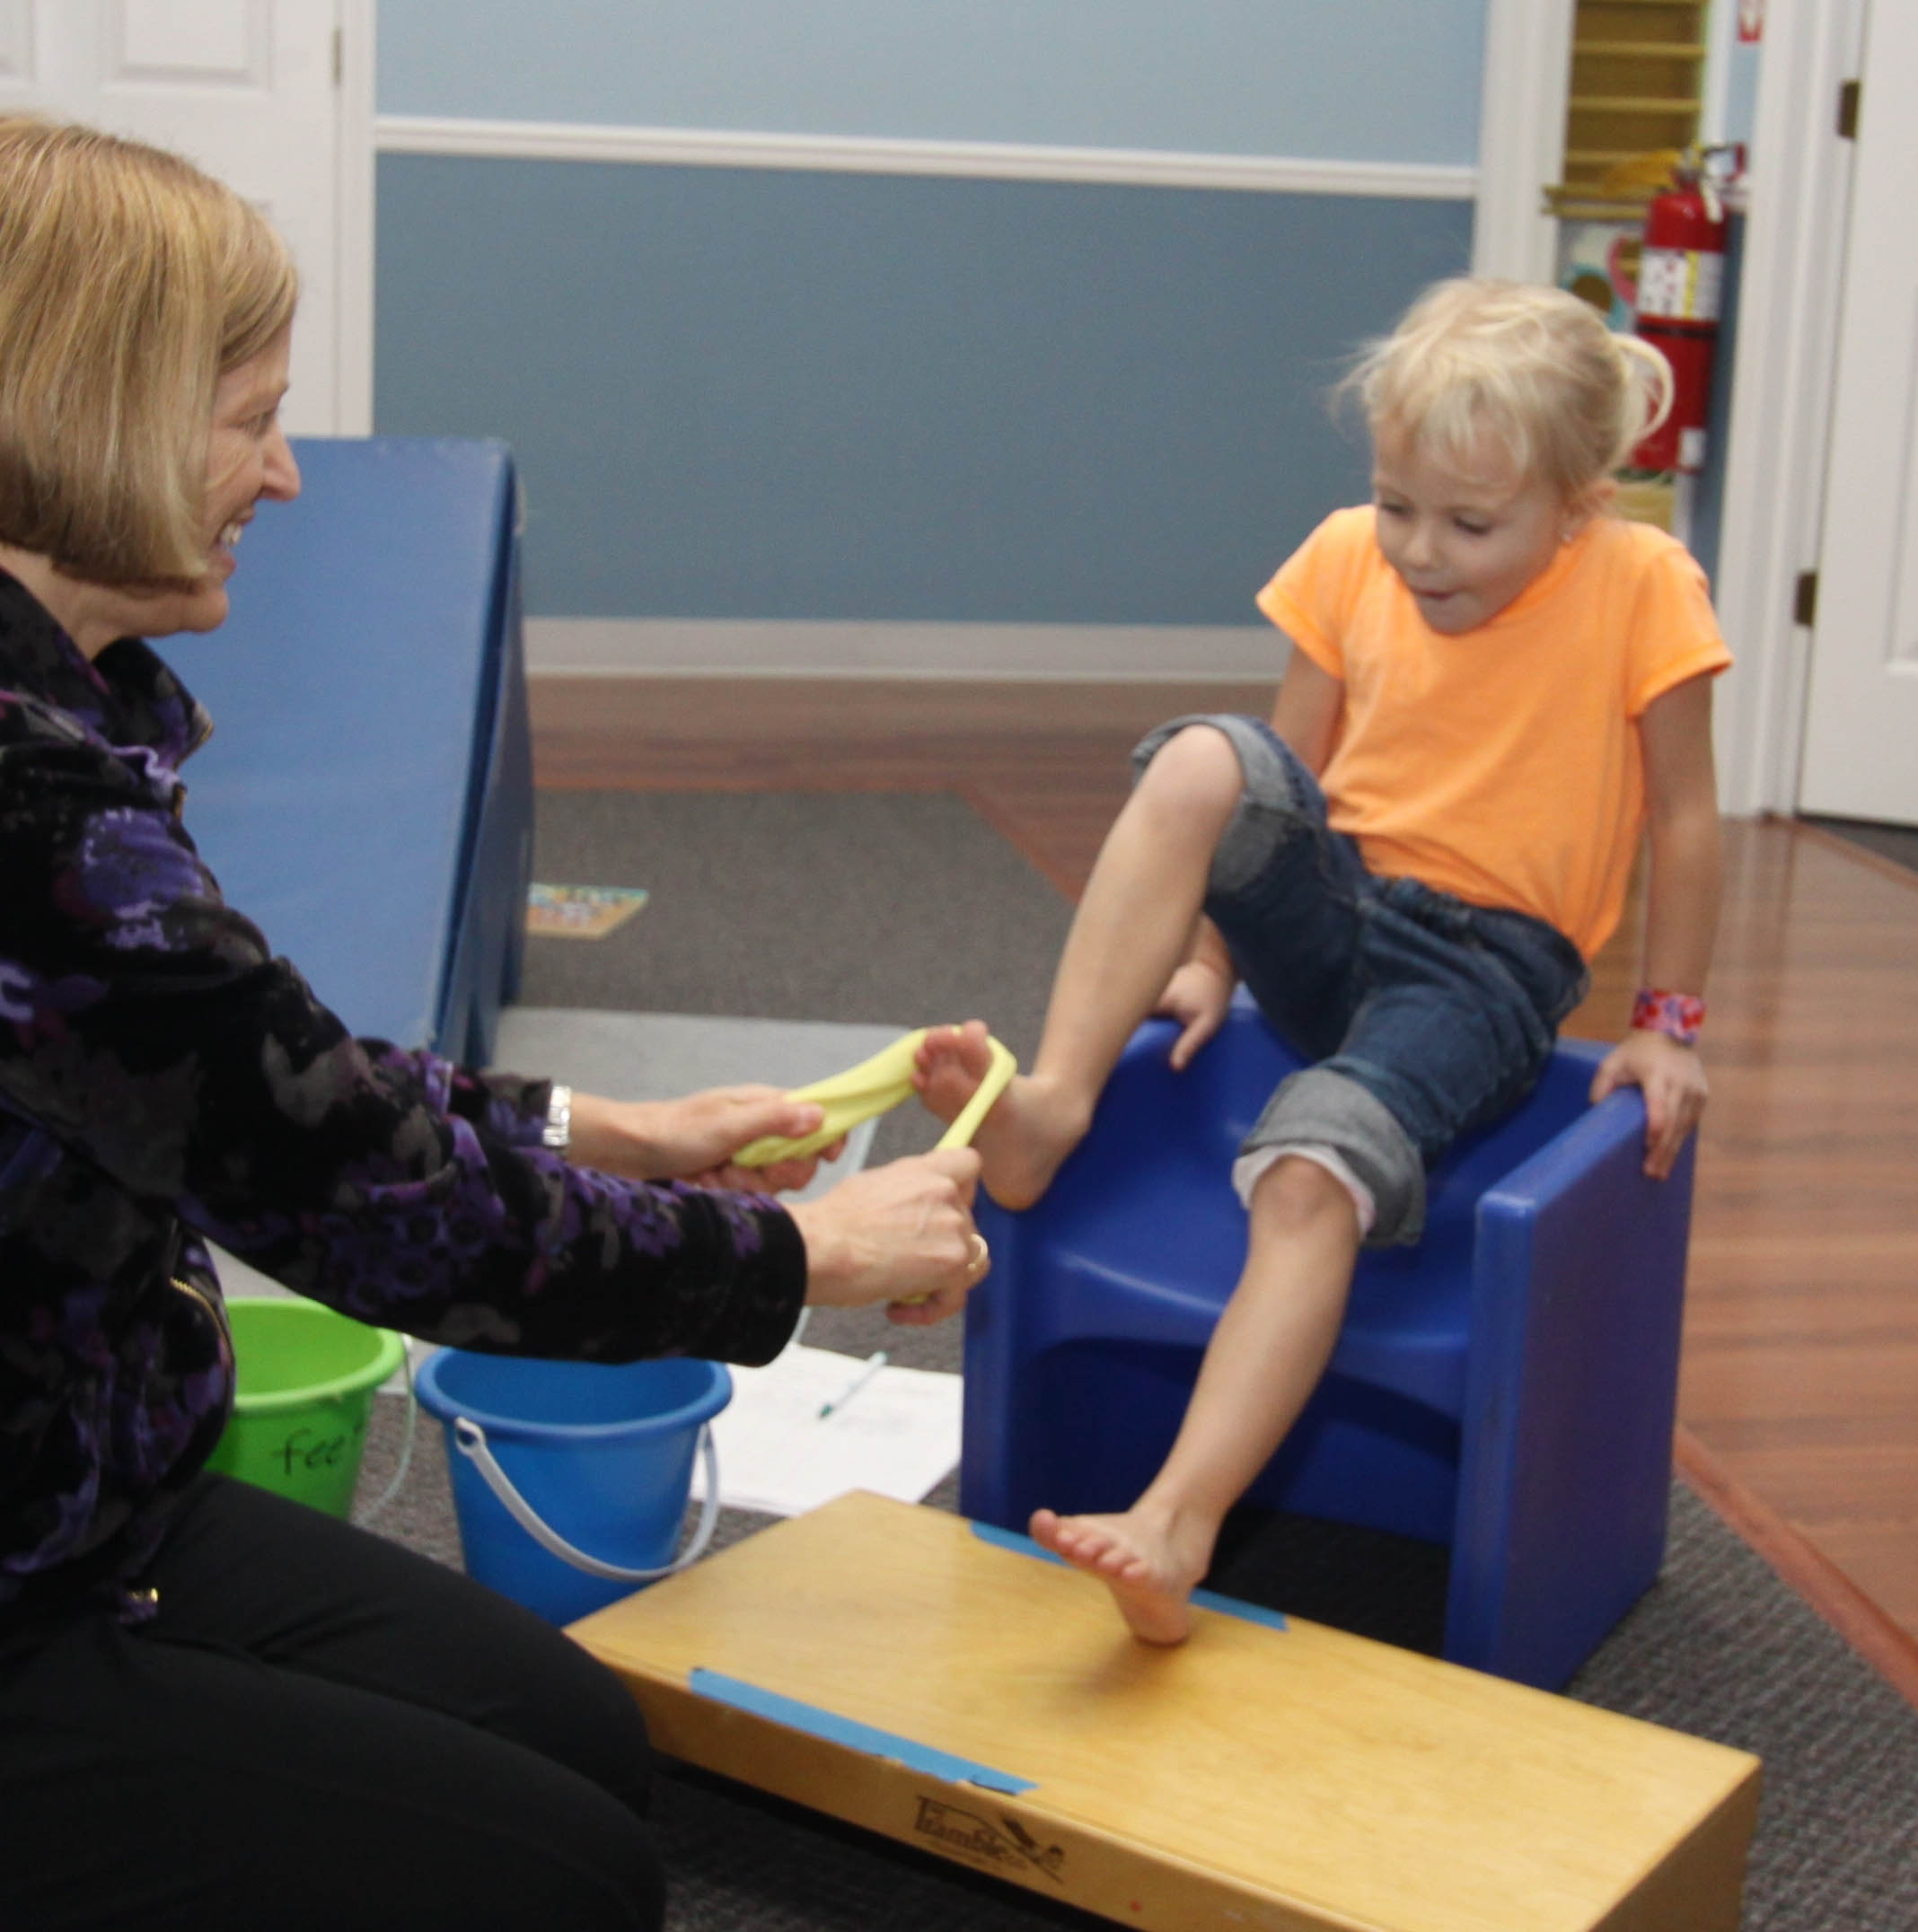 pediatric physical therapy Learn about the various types of pediatric therapy including occupational therapy, physical therapy, and speech language therapy.